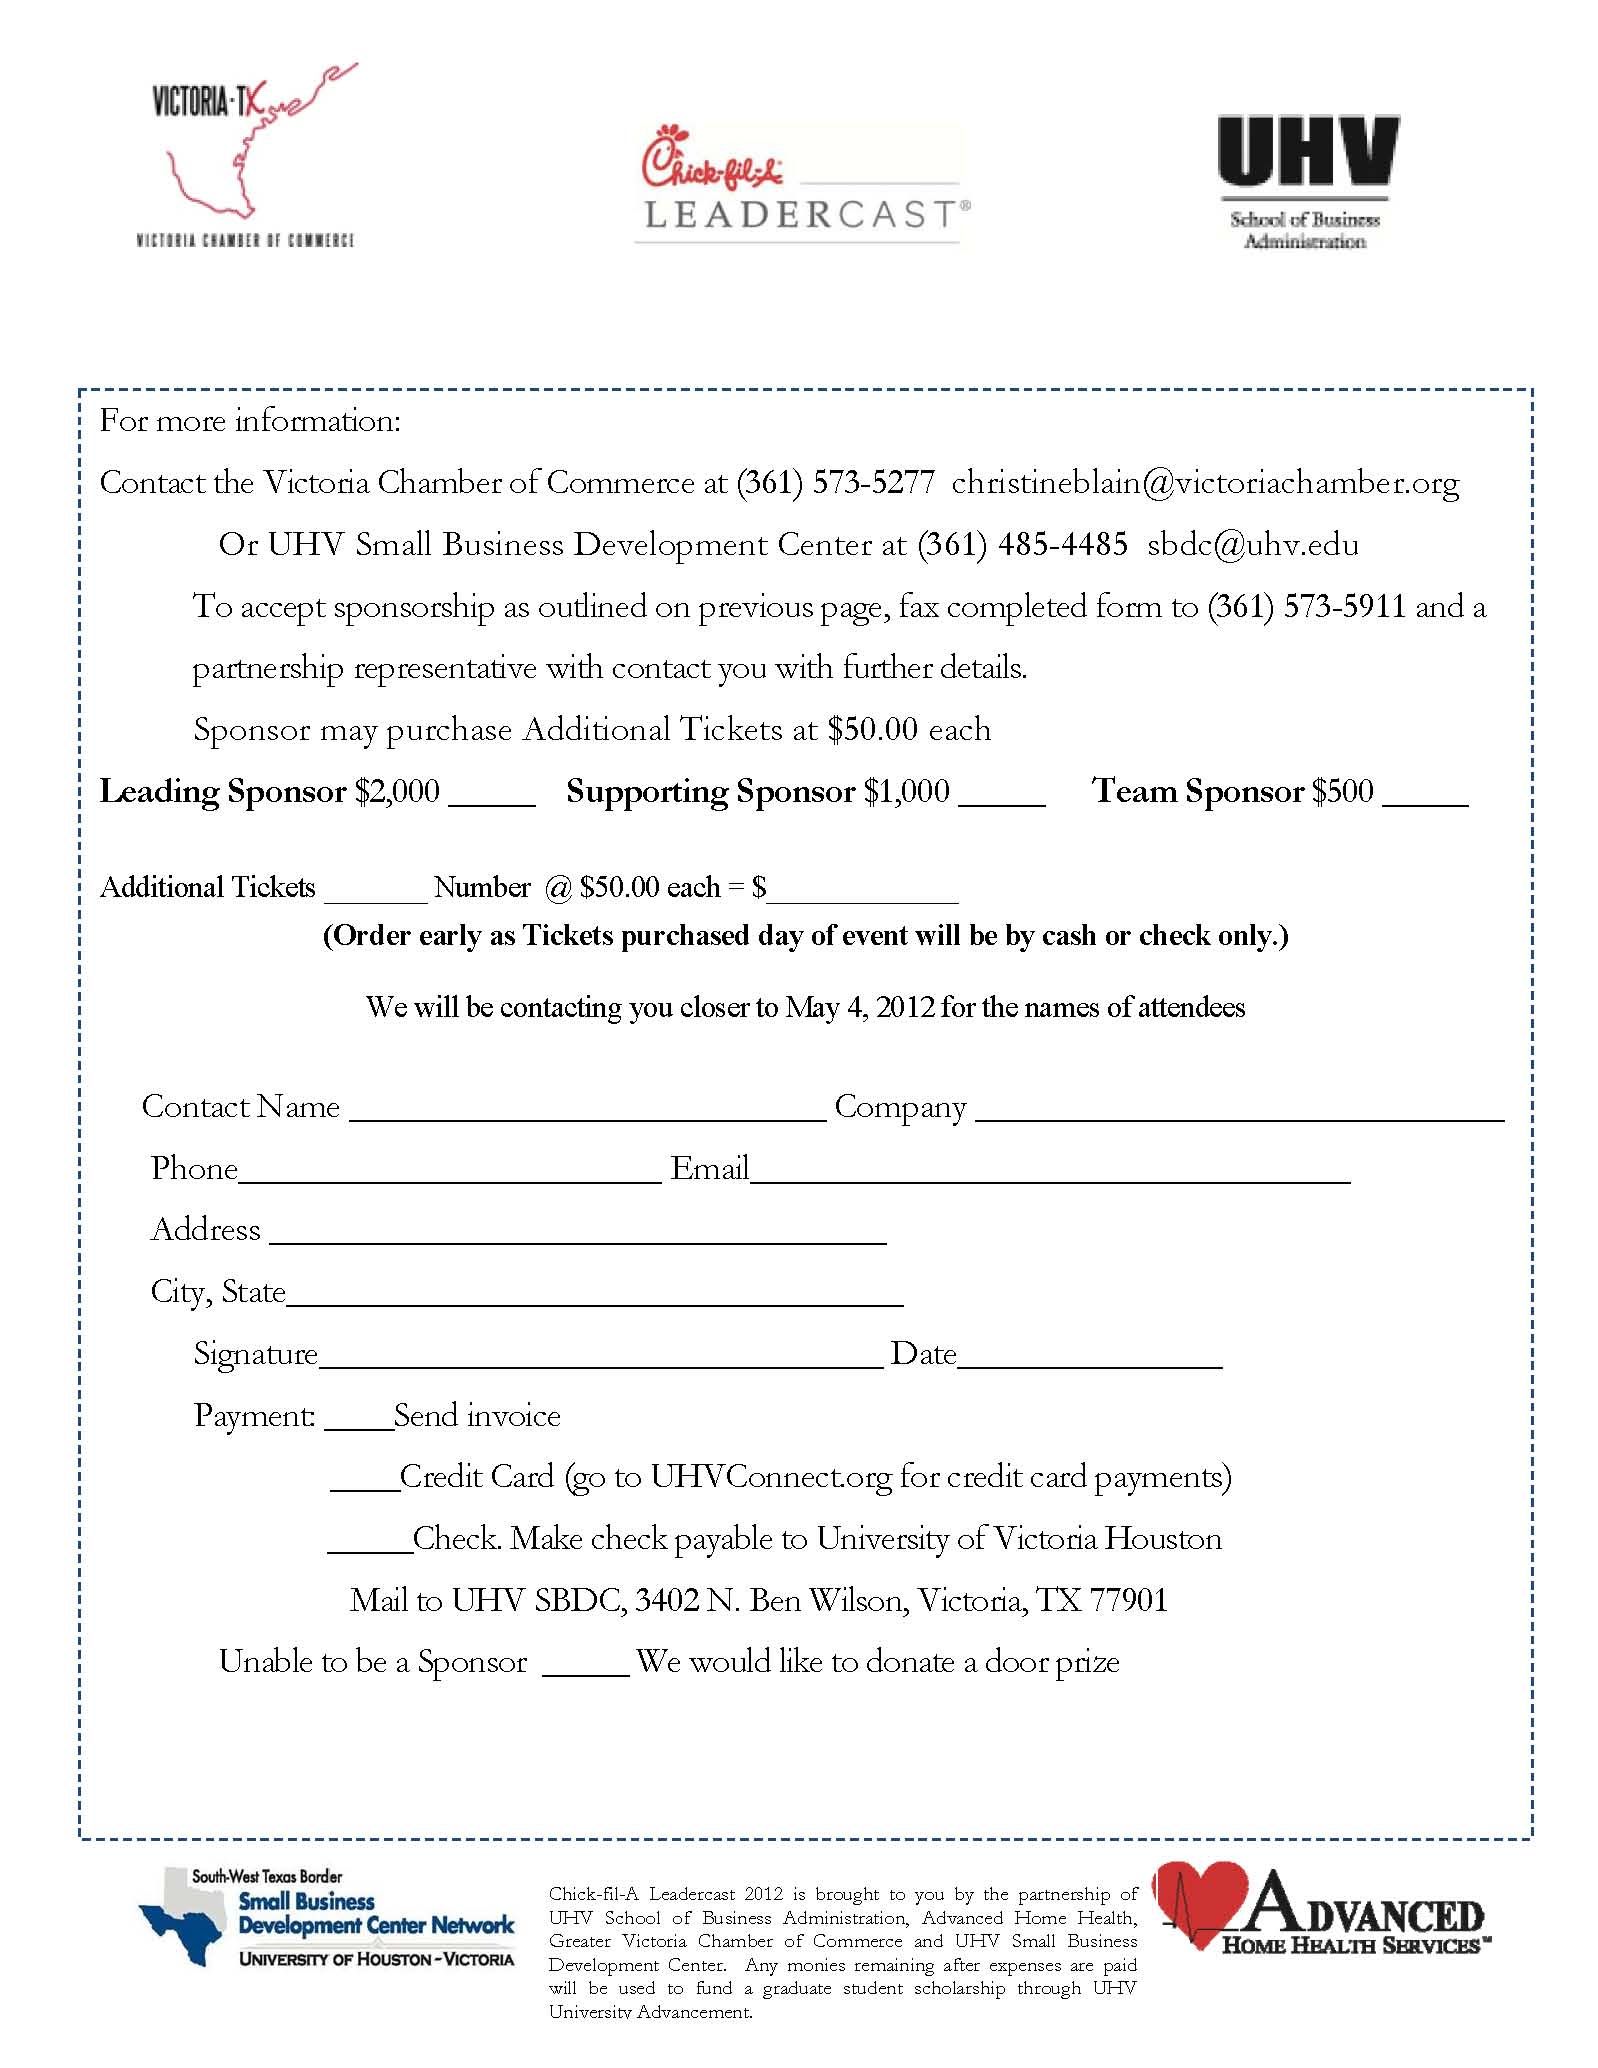 click here to view and print pdf version